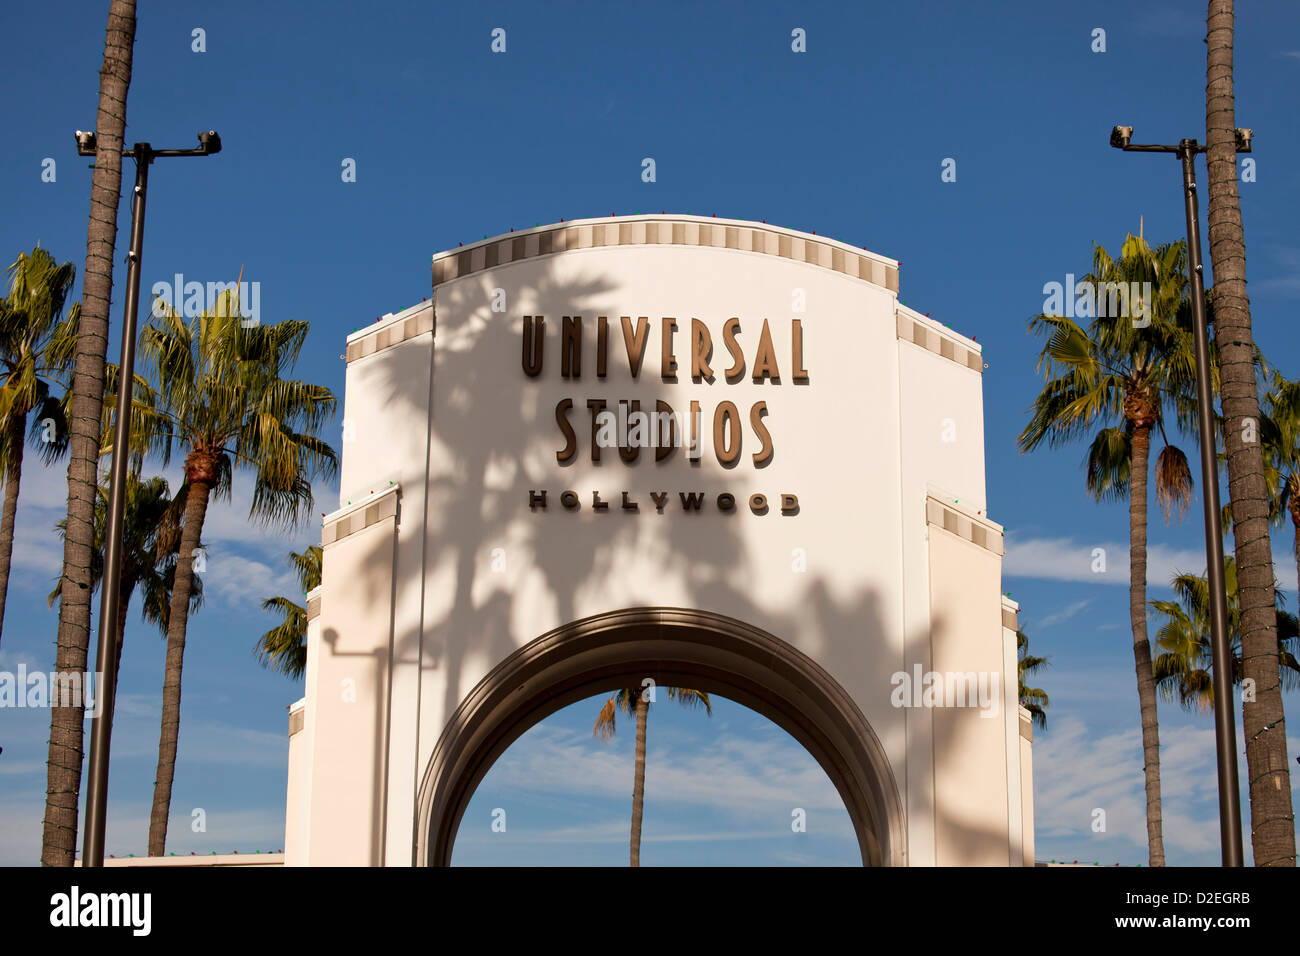 entrance gate to Universal Studios Hollywood, Universal City, Los Angeles, California, United States of America, - Stock Image